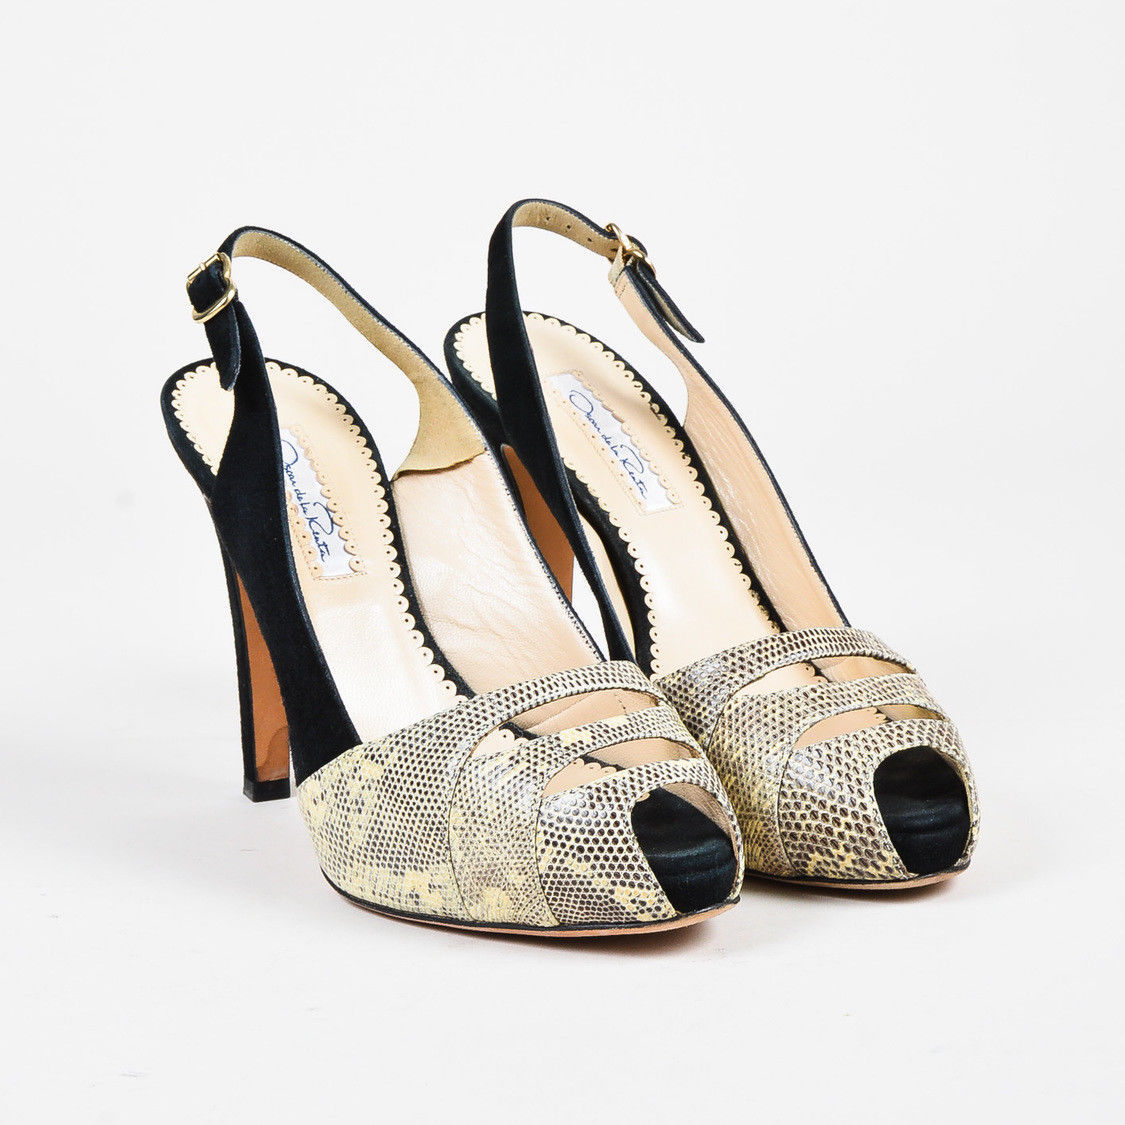 clearance footaction Oscar de la Renta Peep-Toe Slingback Sandals cheap price pre order free shipping shop offer outlet enjoy high quality buy online HbrC8Lo